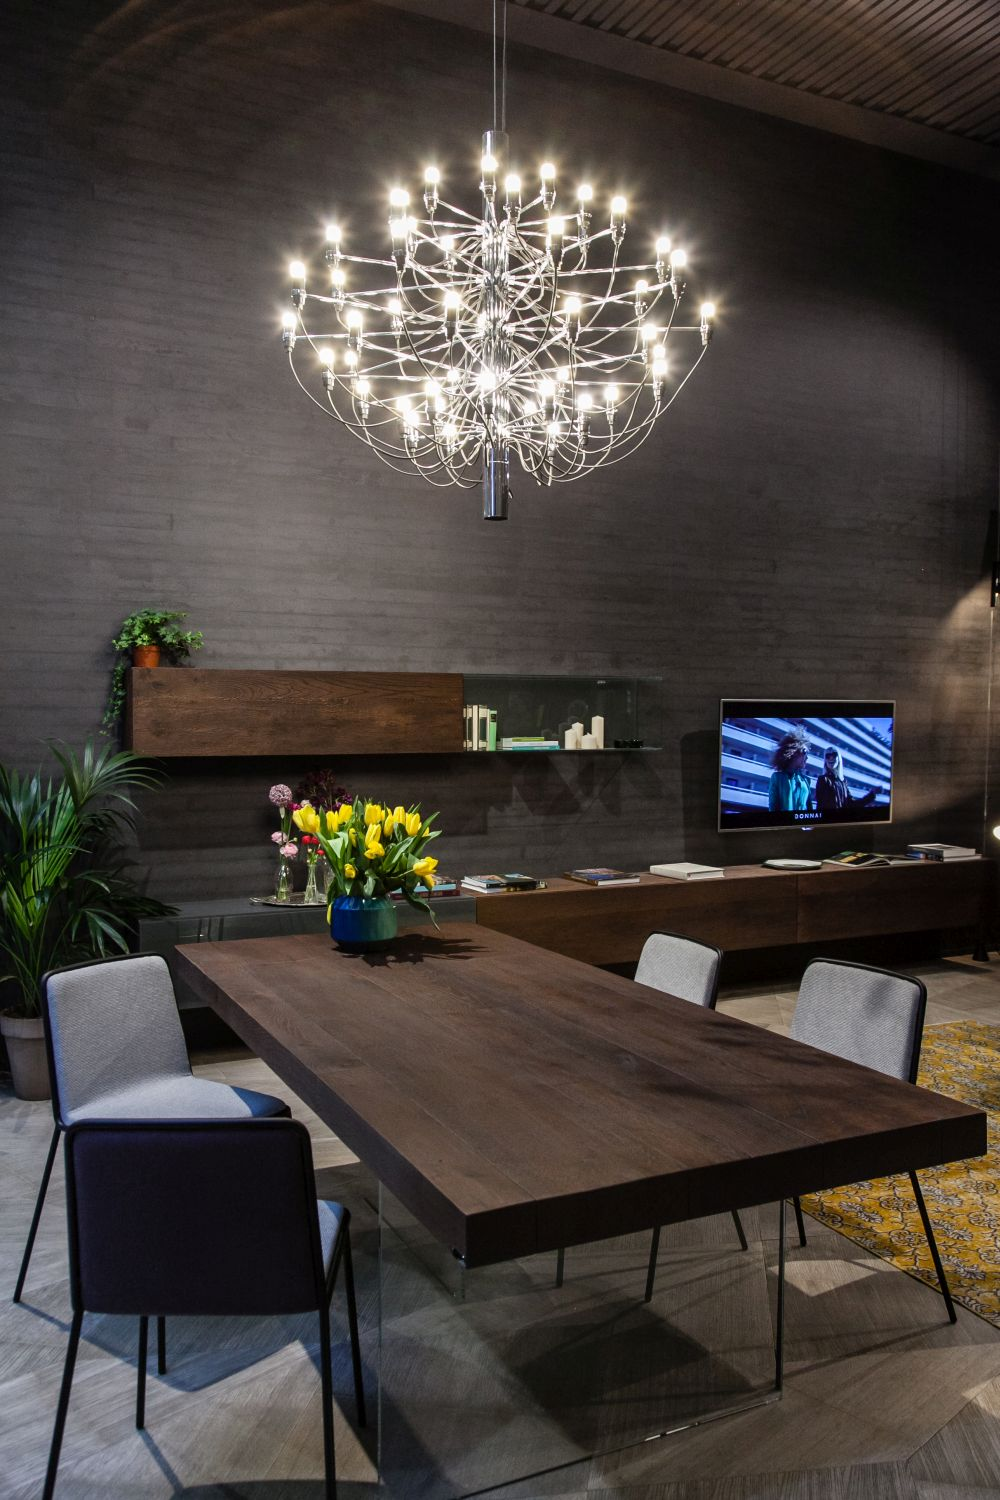 Make a large and sophisticated chandelier the focal point of the entire floor plan, not just the dining area